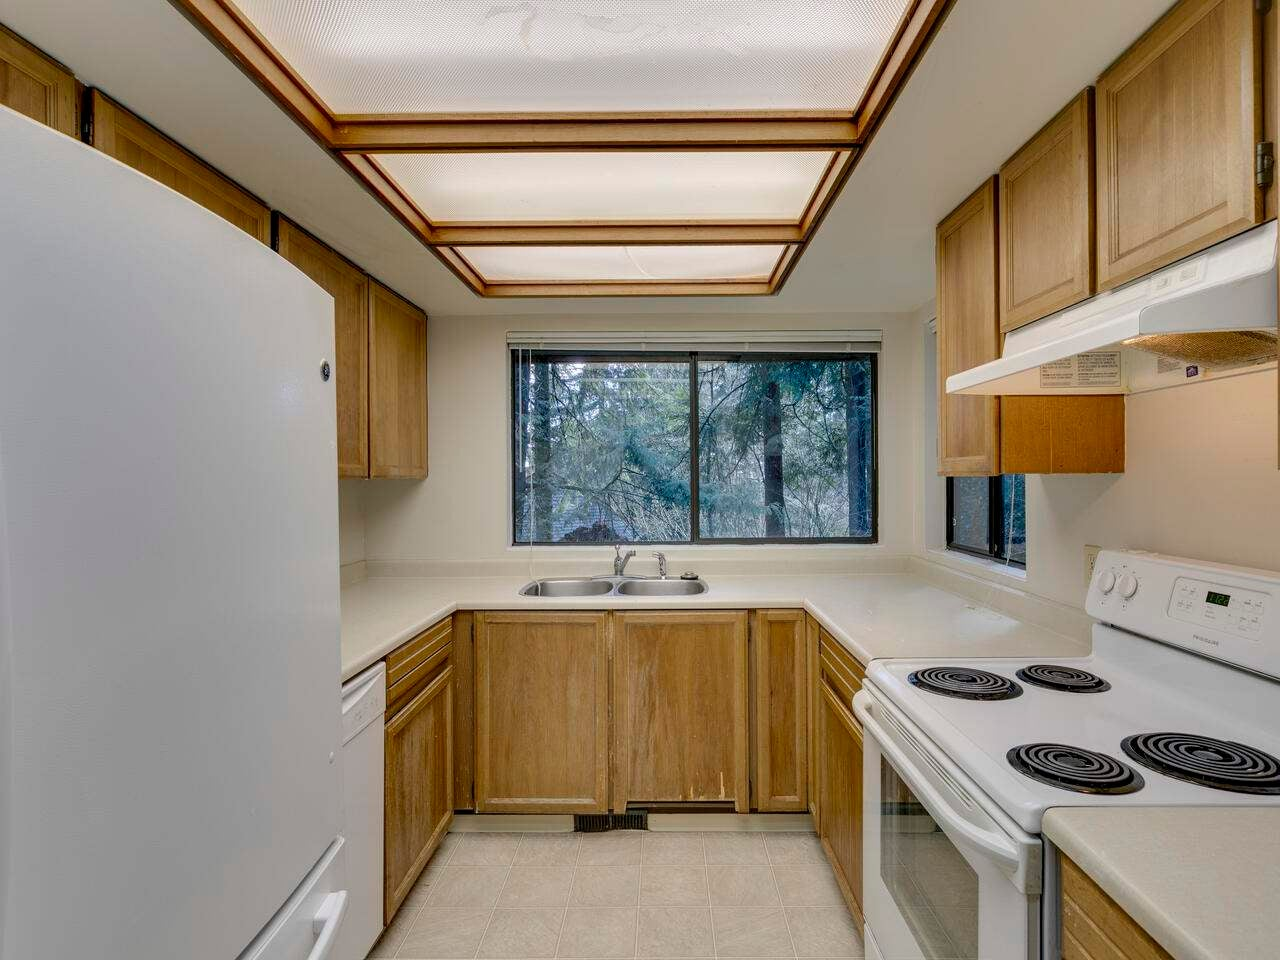 867 FREDERICK ROAD - Lynn Valley Townhouse for sale, 3 Bedrooms (R2569757) - #19